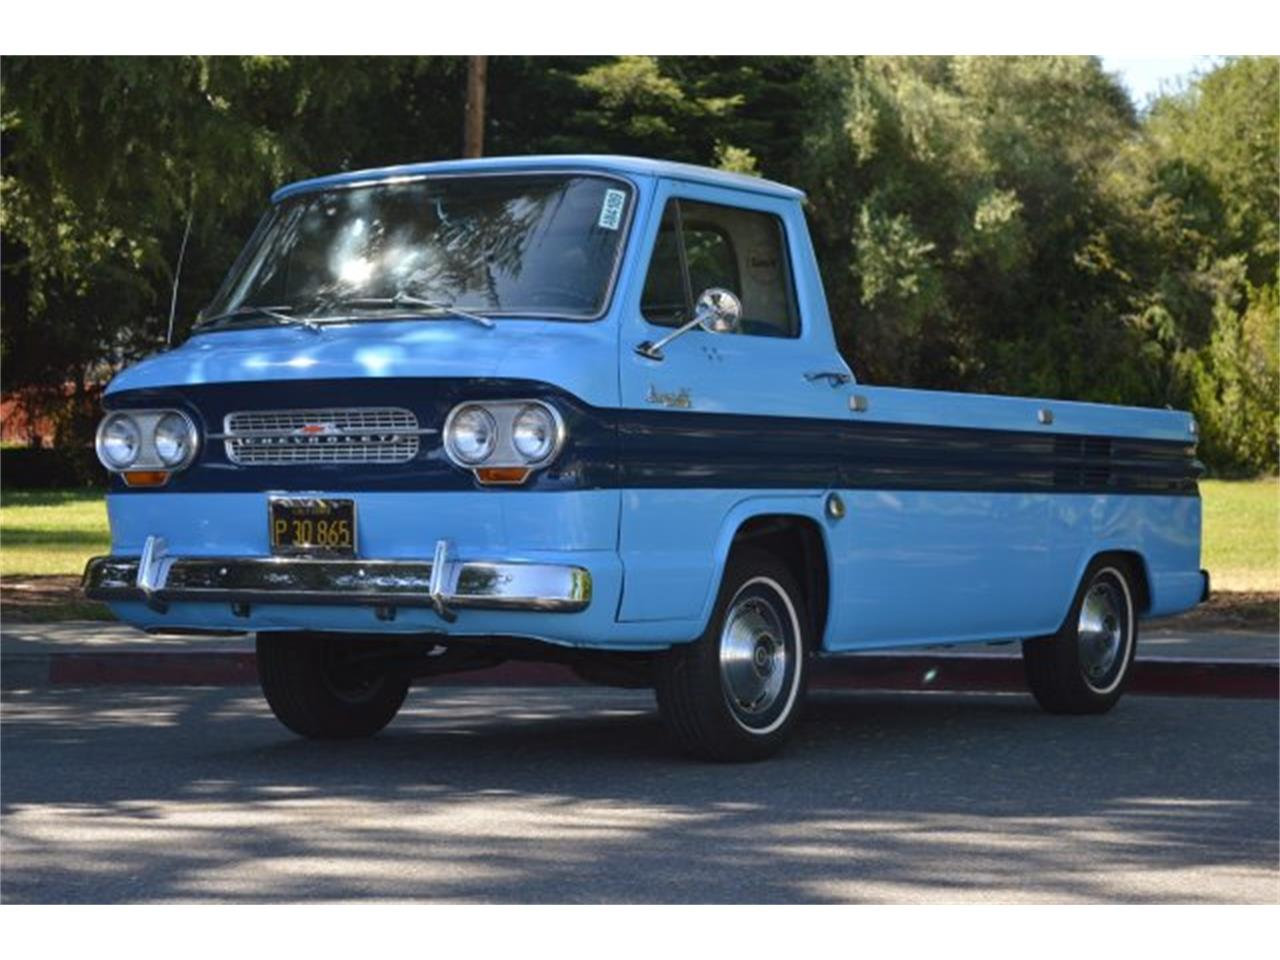 For Sale: 1964 Chevrolet Corvair in San Jose, California